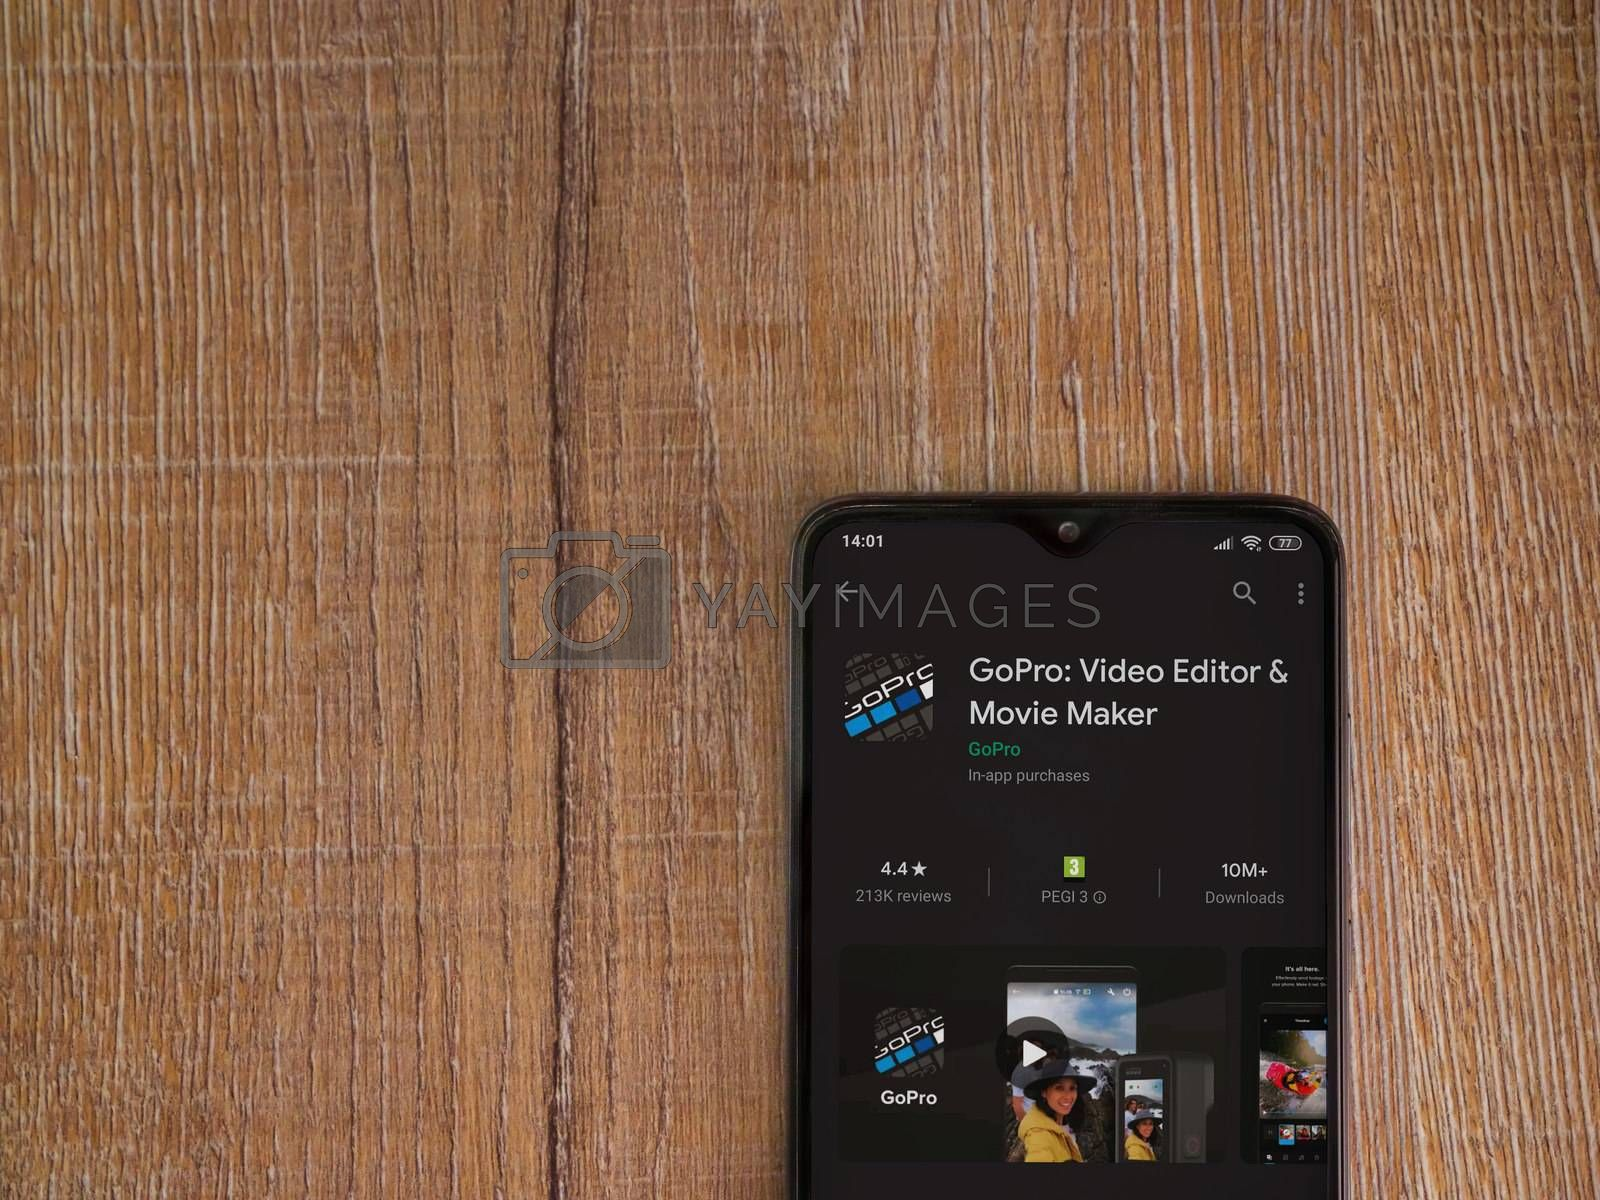 GoPro - Video Editor and Movie Maker app play store page on the  by wavemovies